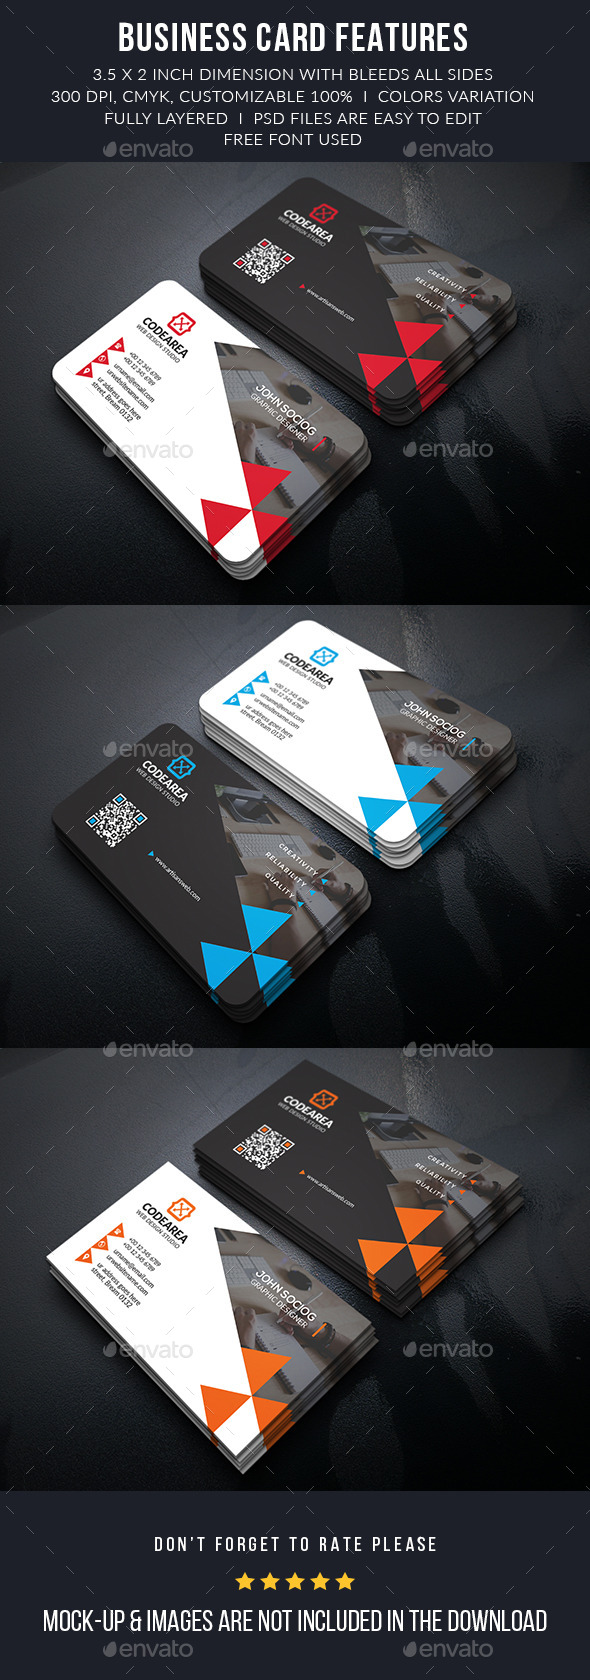 Creative Services Business Card